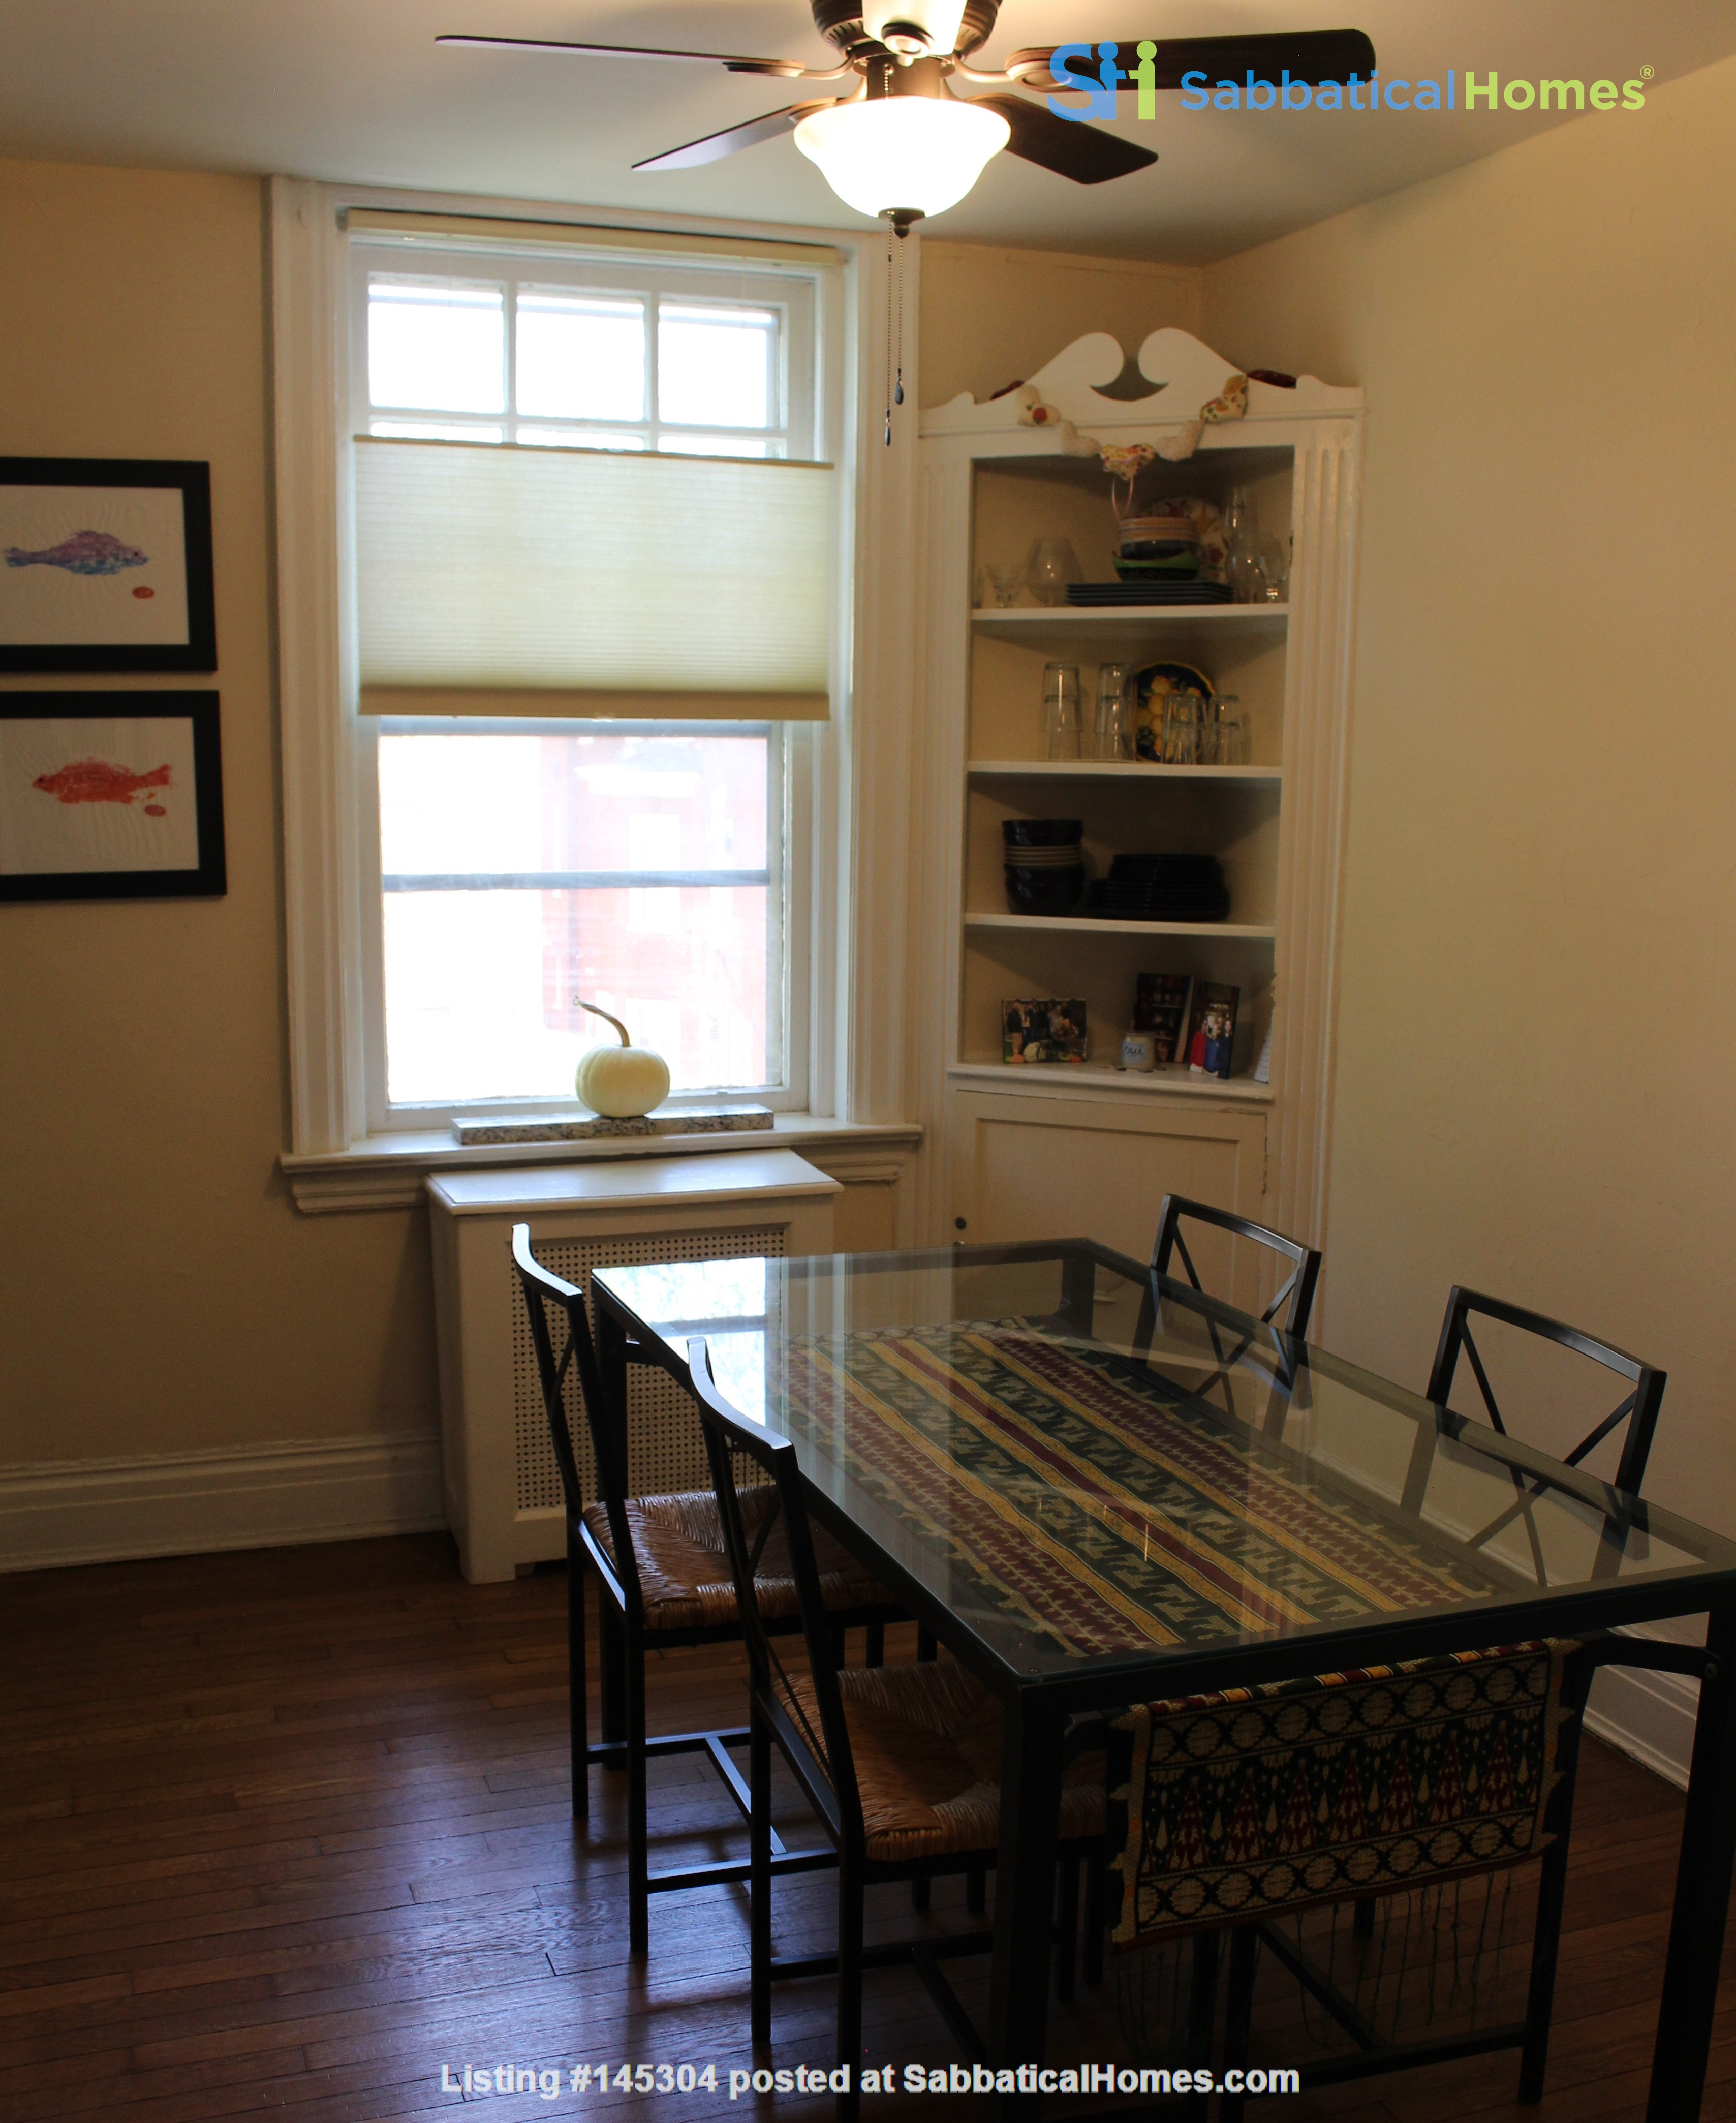 1 BR Condo for long-term lease comes w pool, gym and charm! Home Rental in Philadelphia, Pennsylvania, United States 2